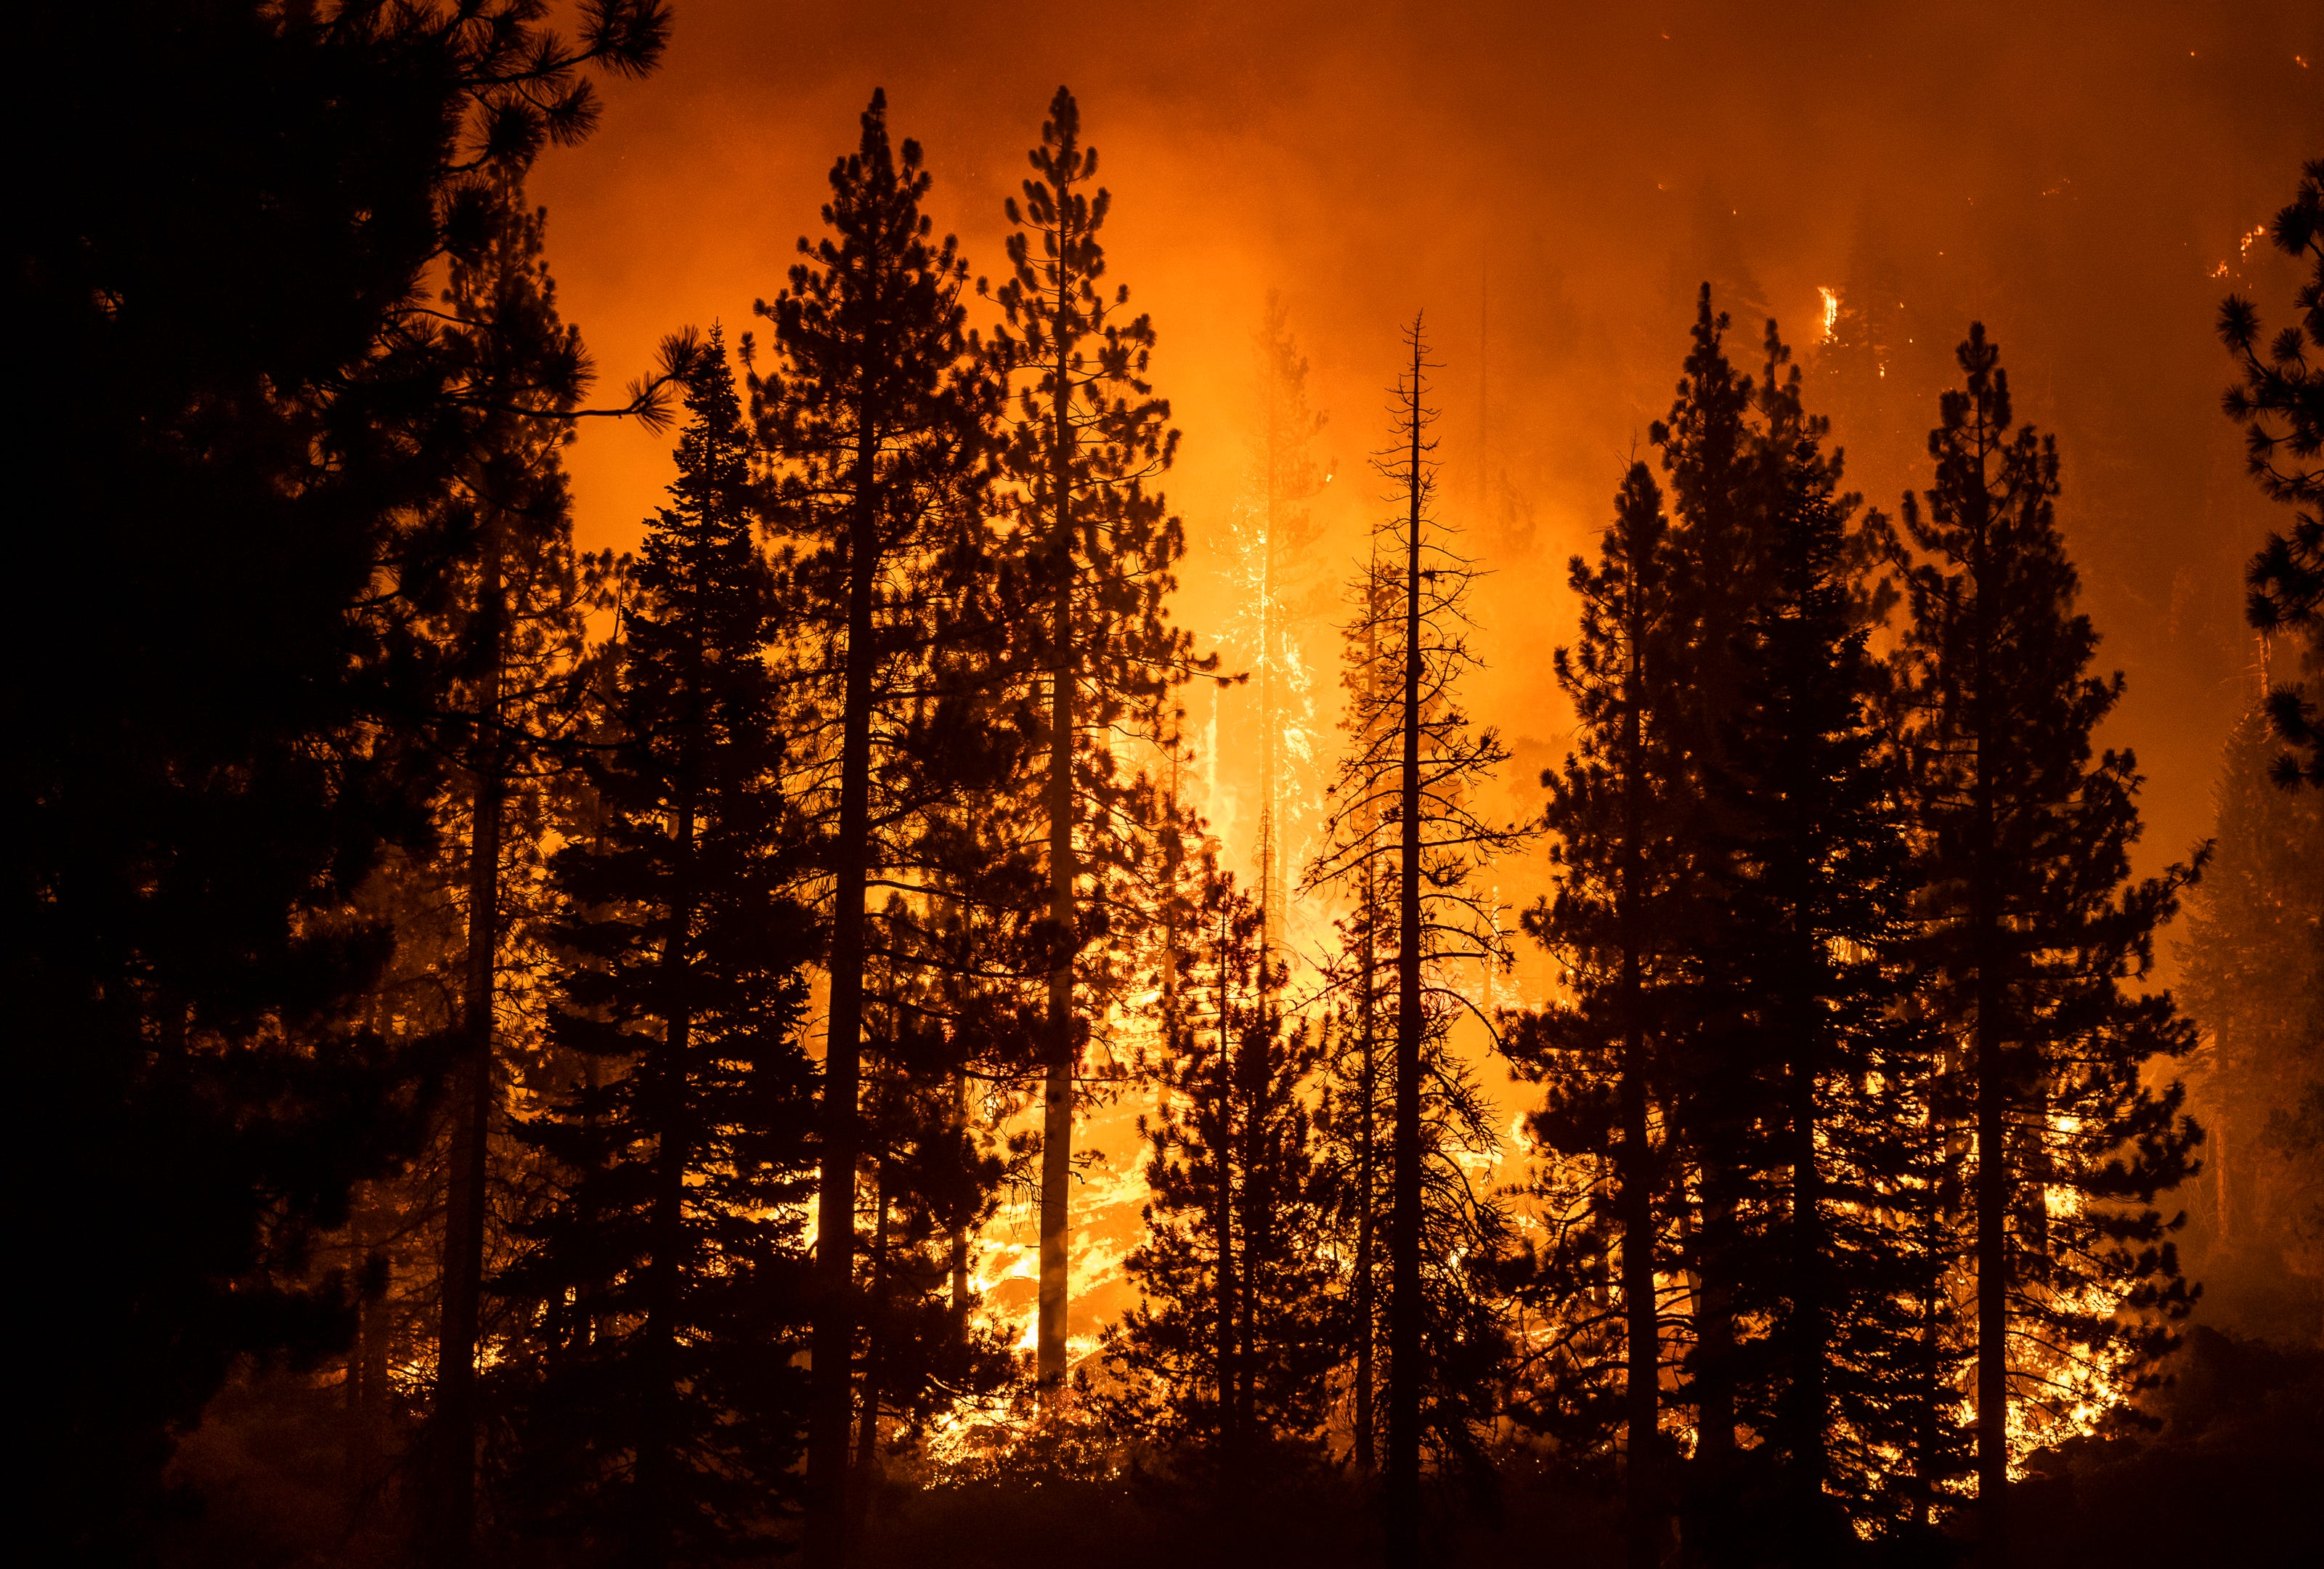 We re still not out of the woods : Improved weather conditions could aid crews fighting to saveLake Tahoe from Caldor Fire